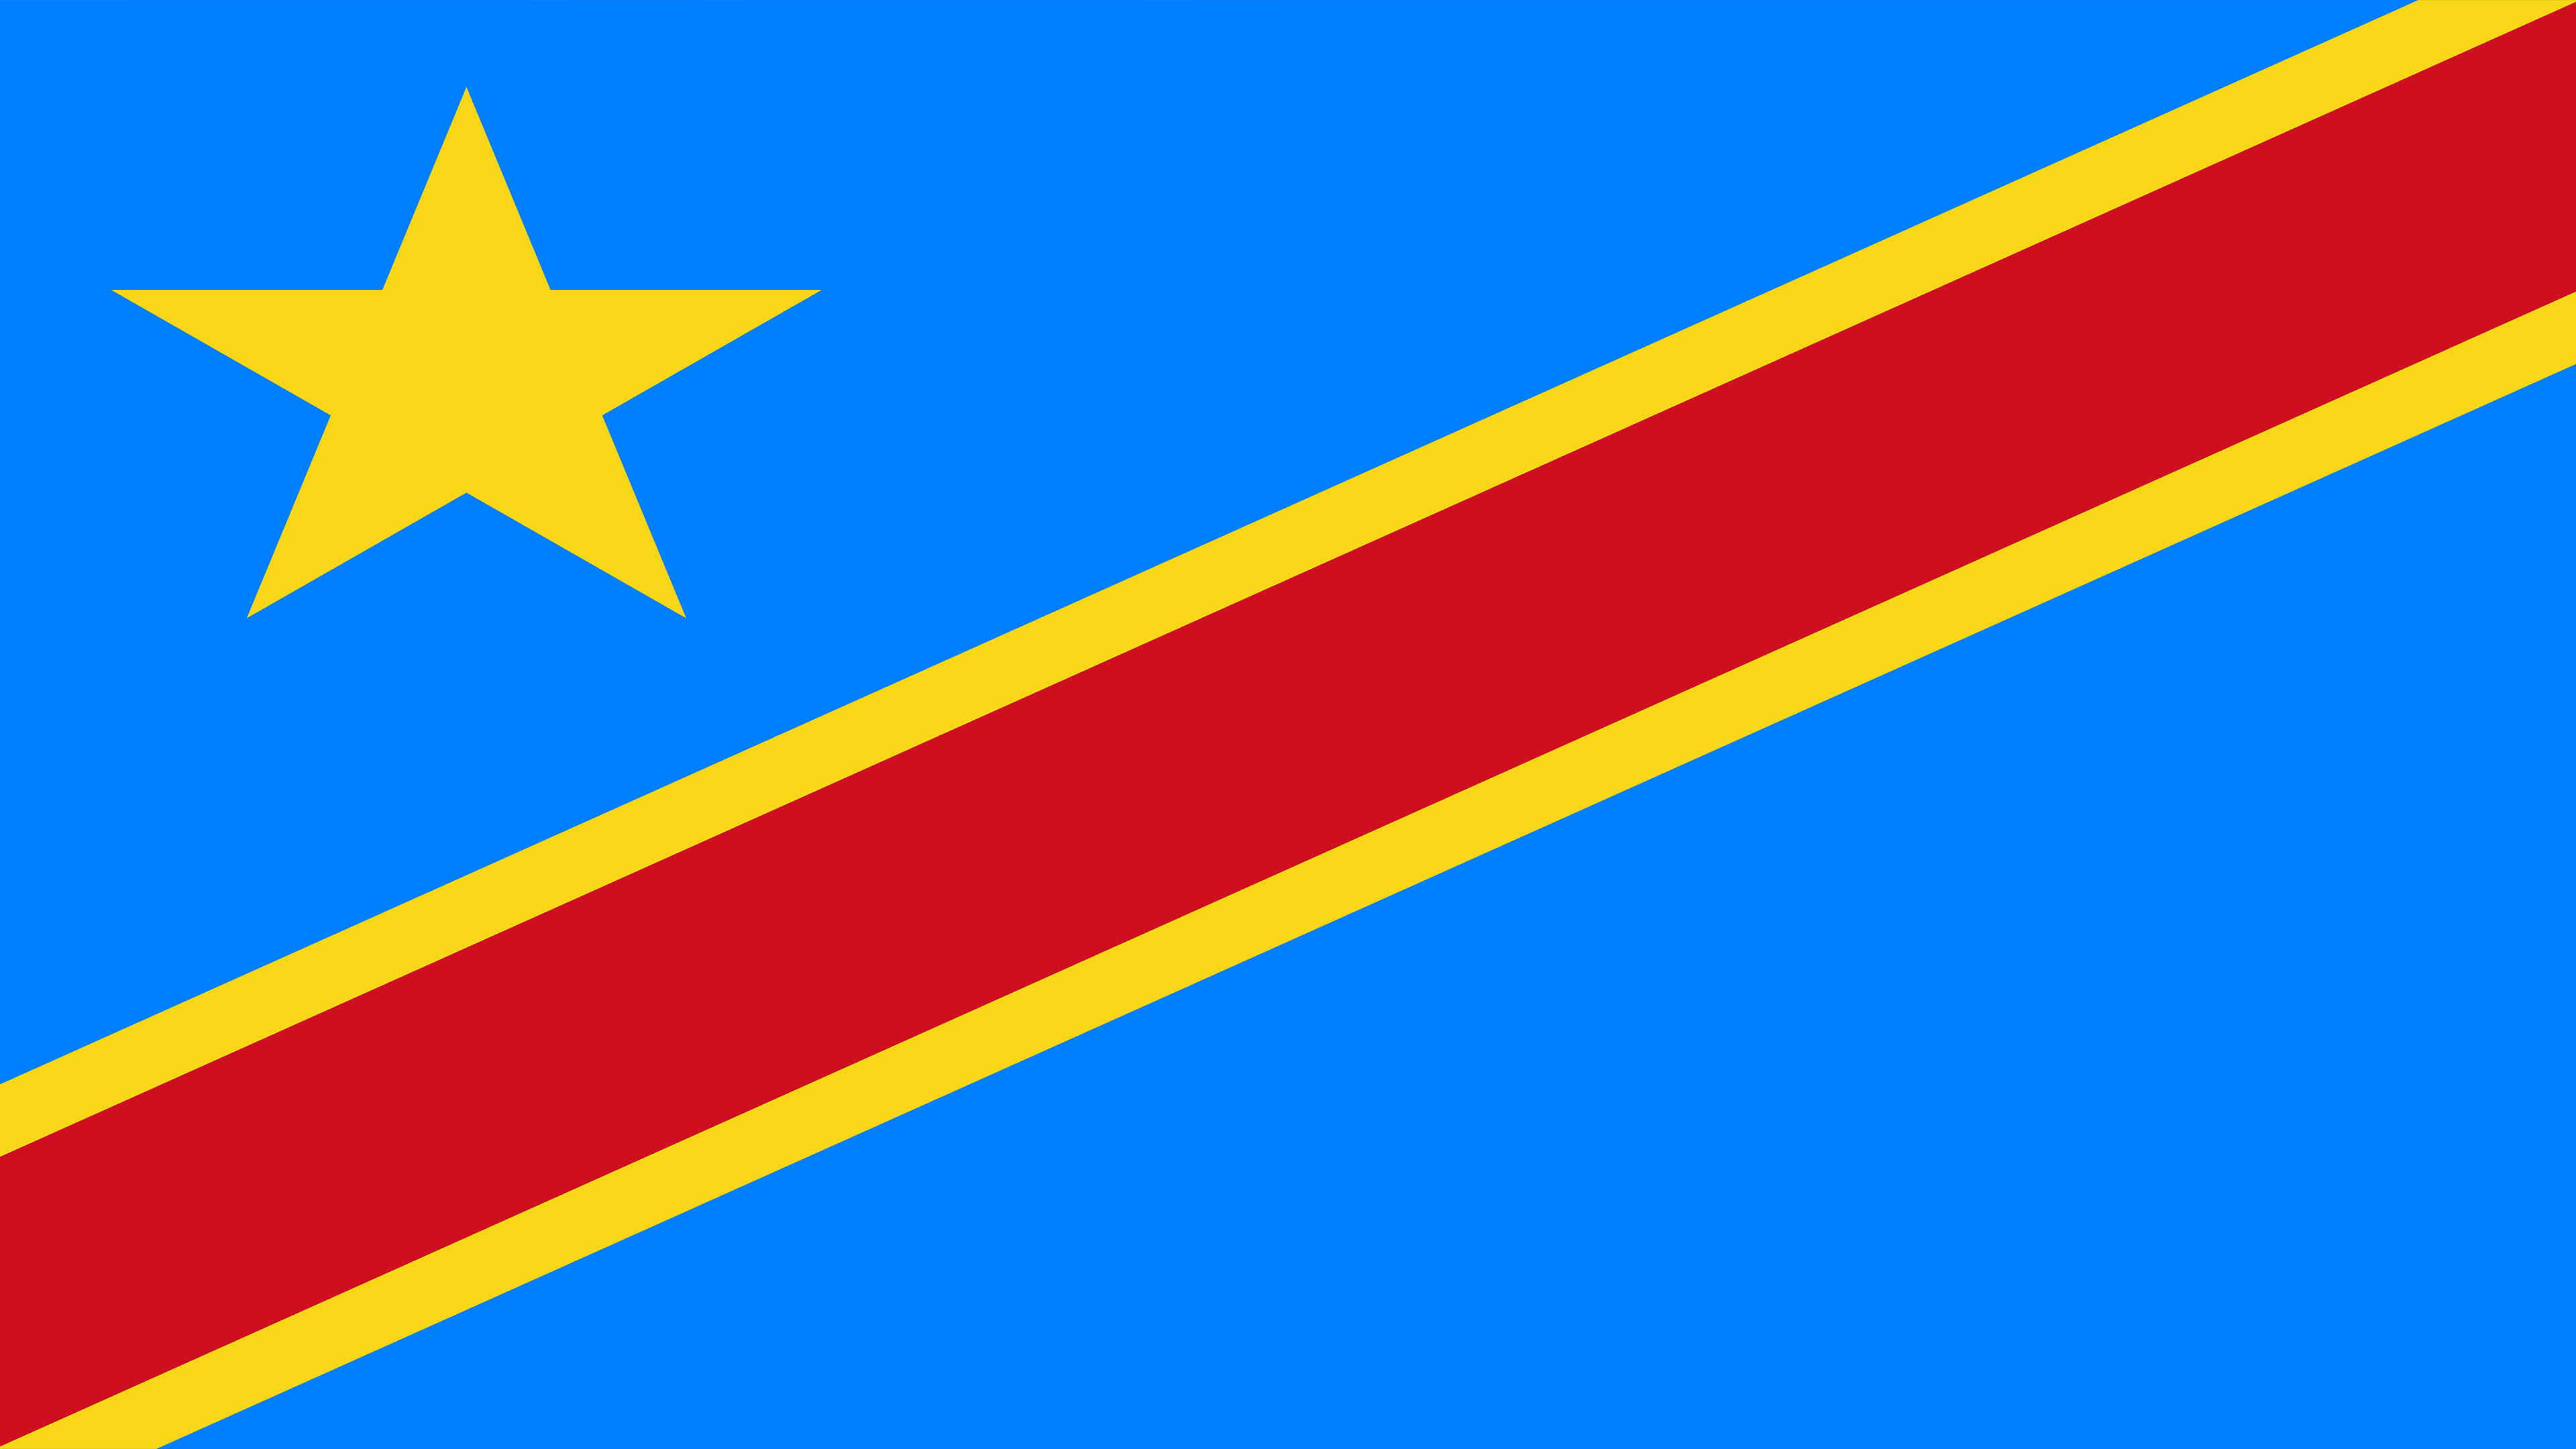 democratic republic of the congo flag uhd 4k wallpaper